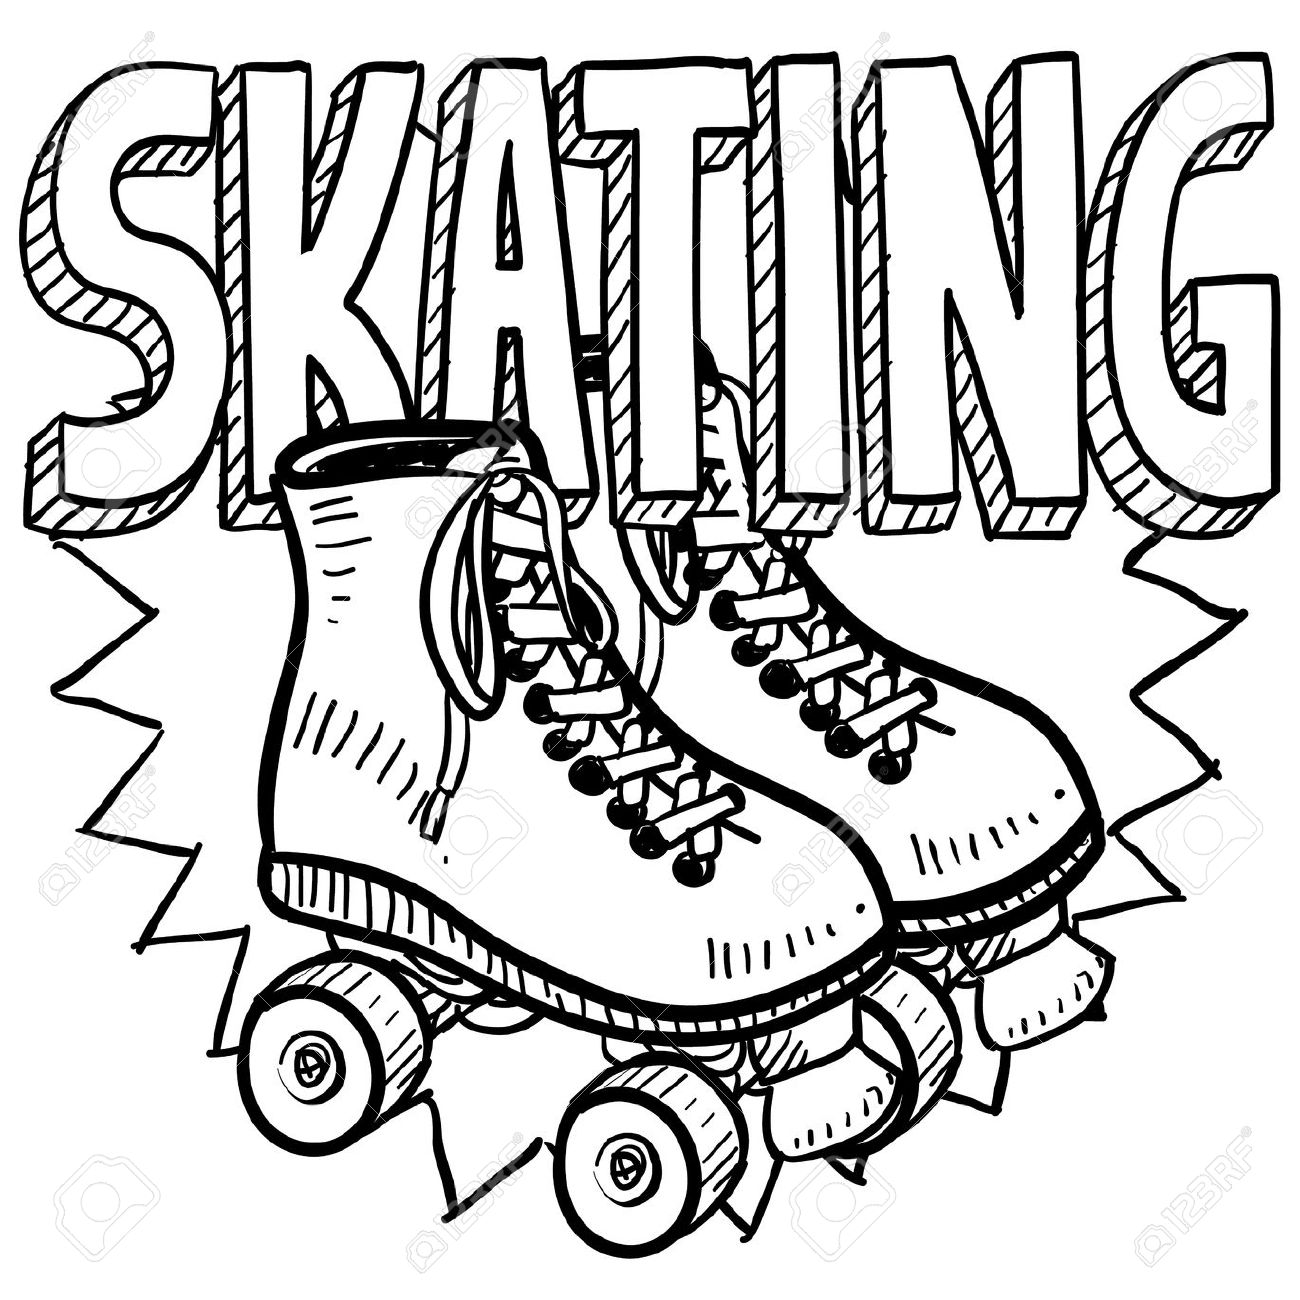 Free roller skating coloring pages - Roller Skating Doodle Style Roller Skating Illustration In Vector Format Includes Text And Skates